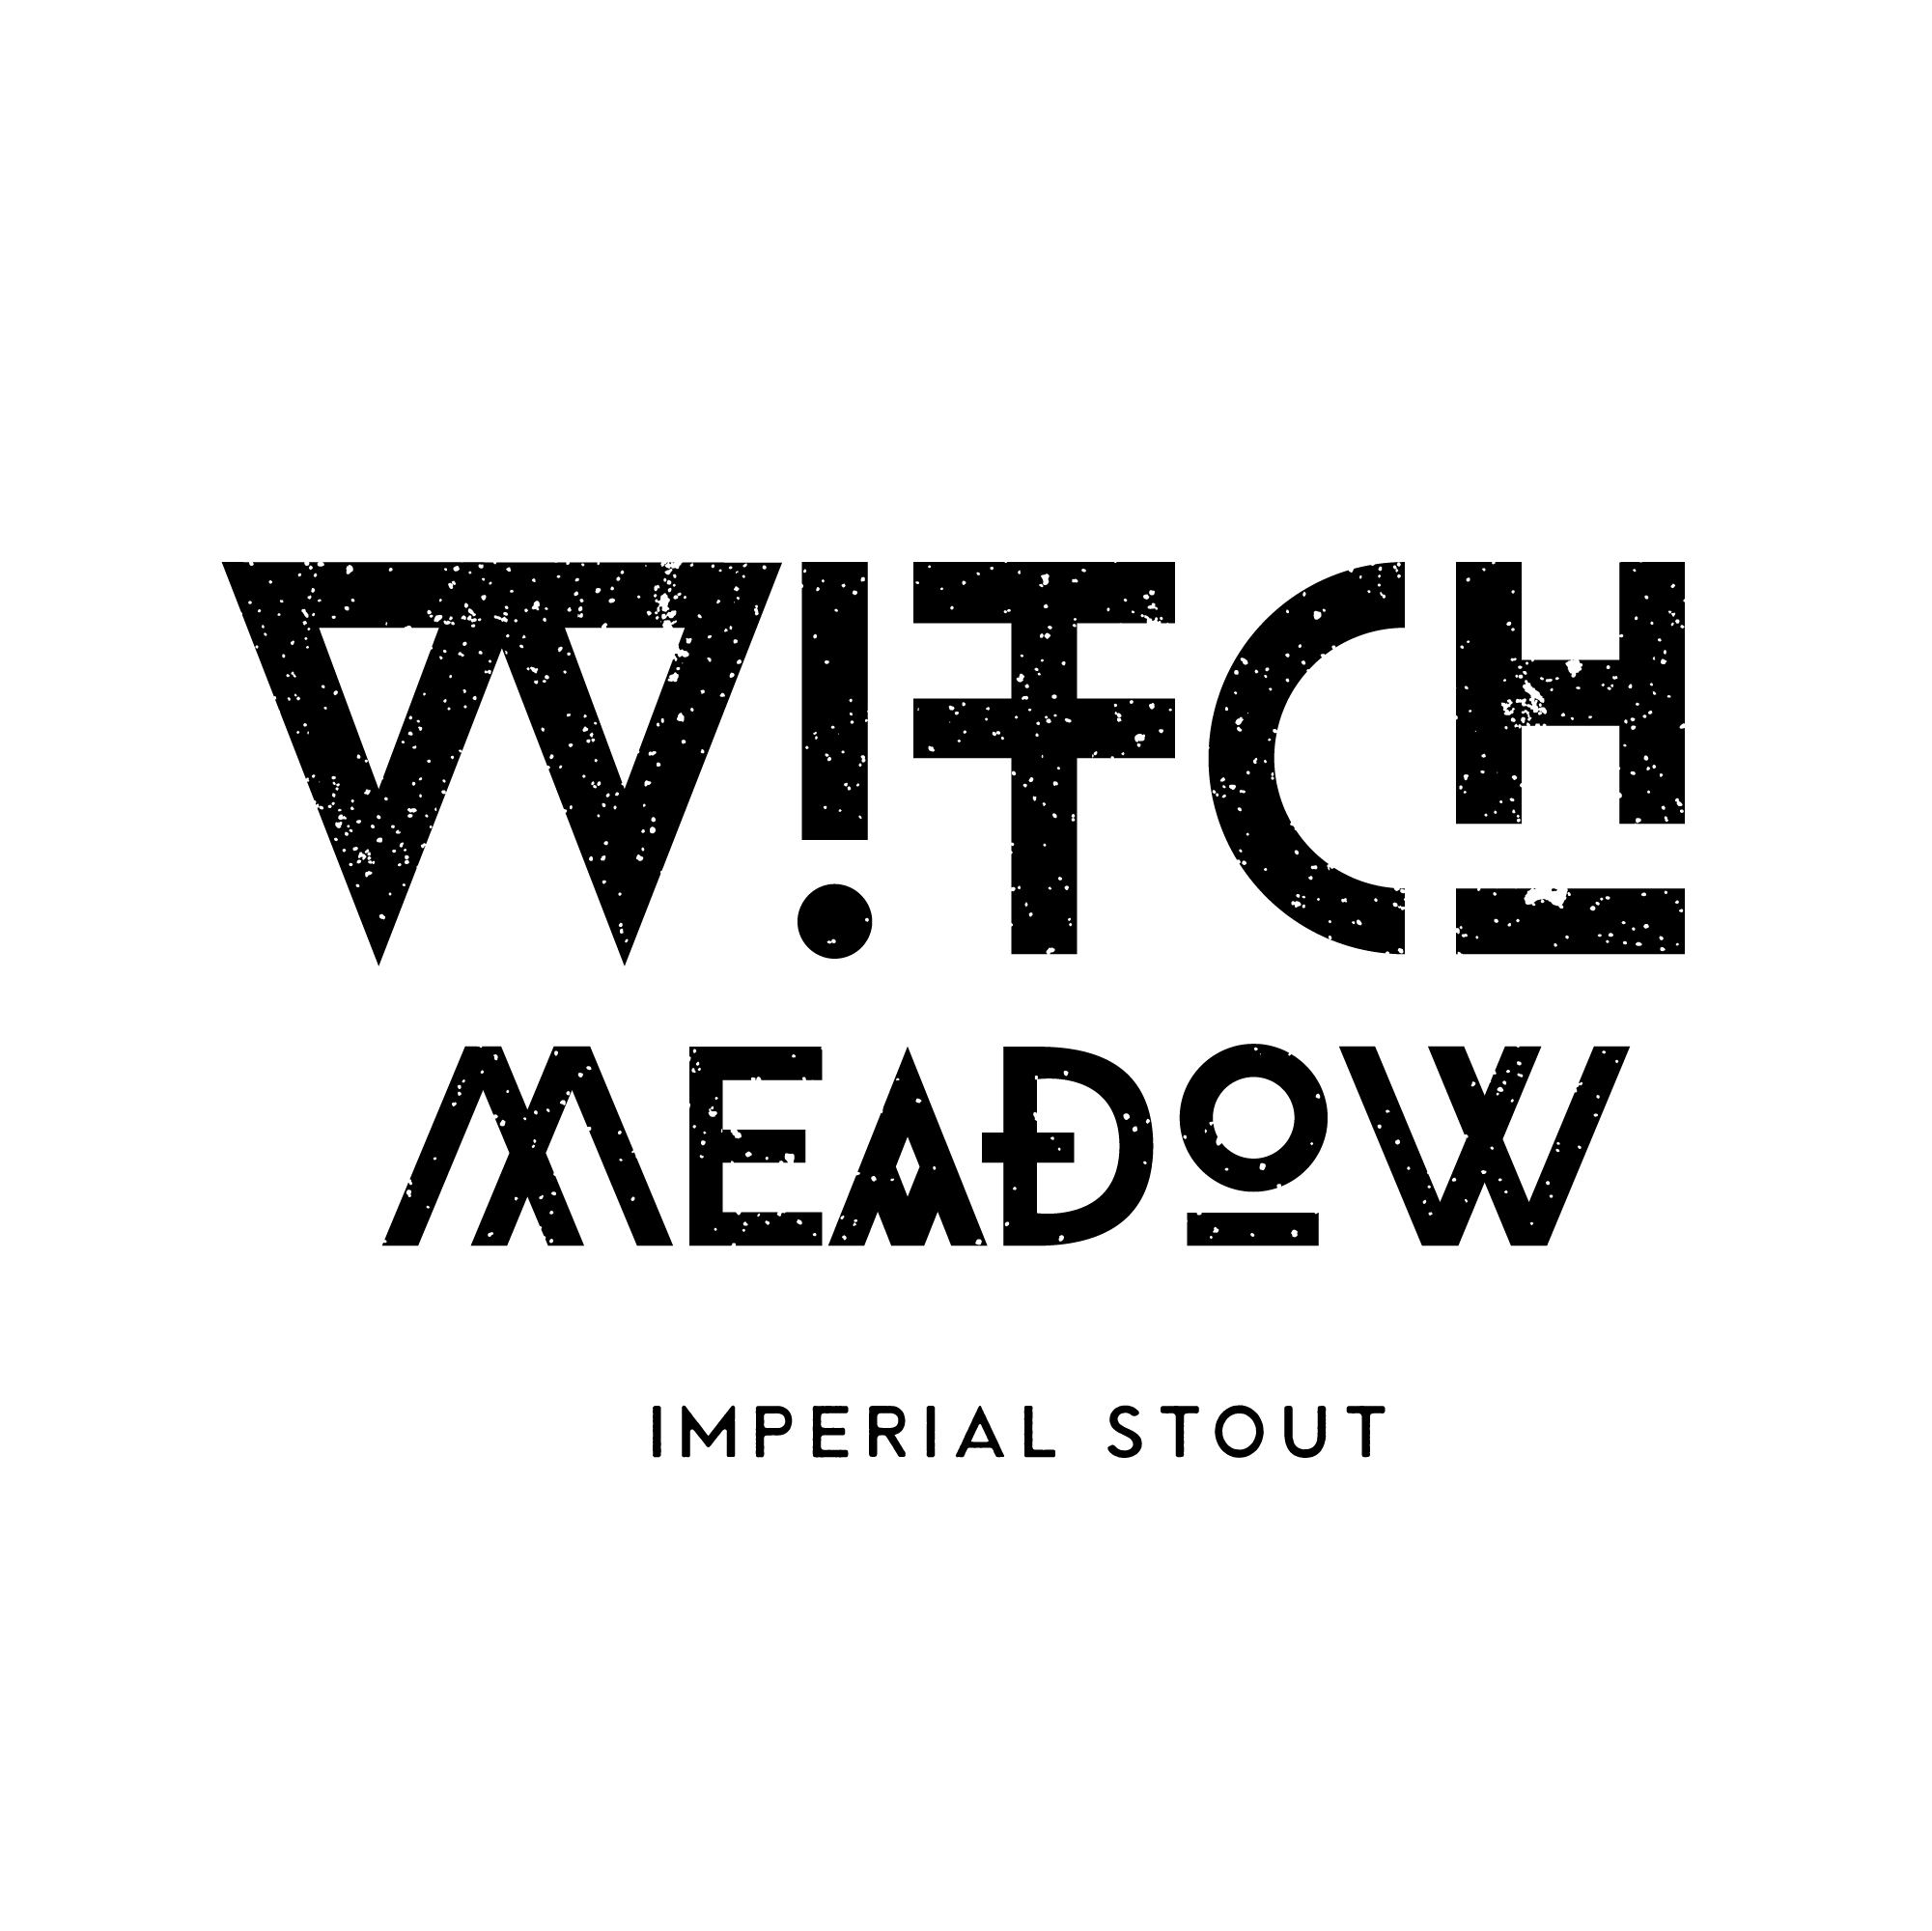 WitchMeadow_black.png